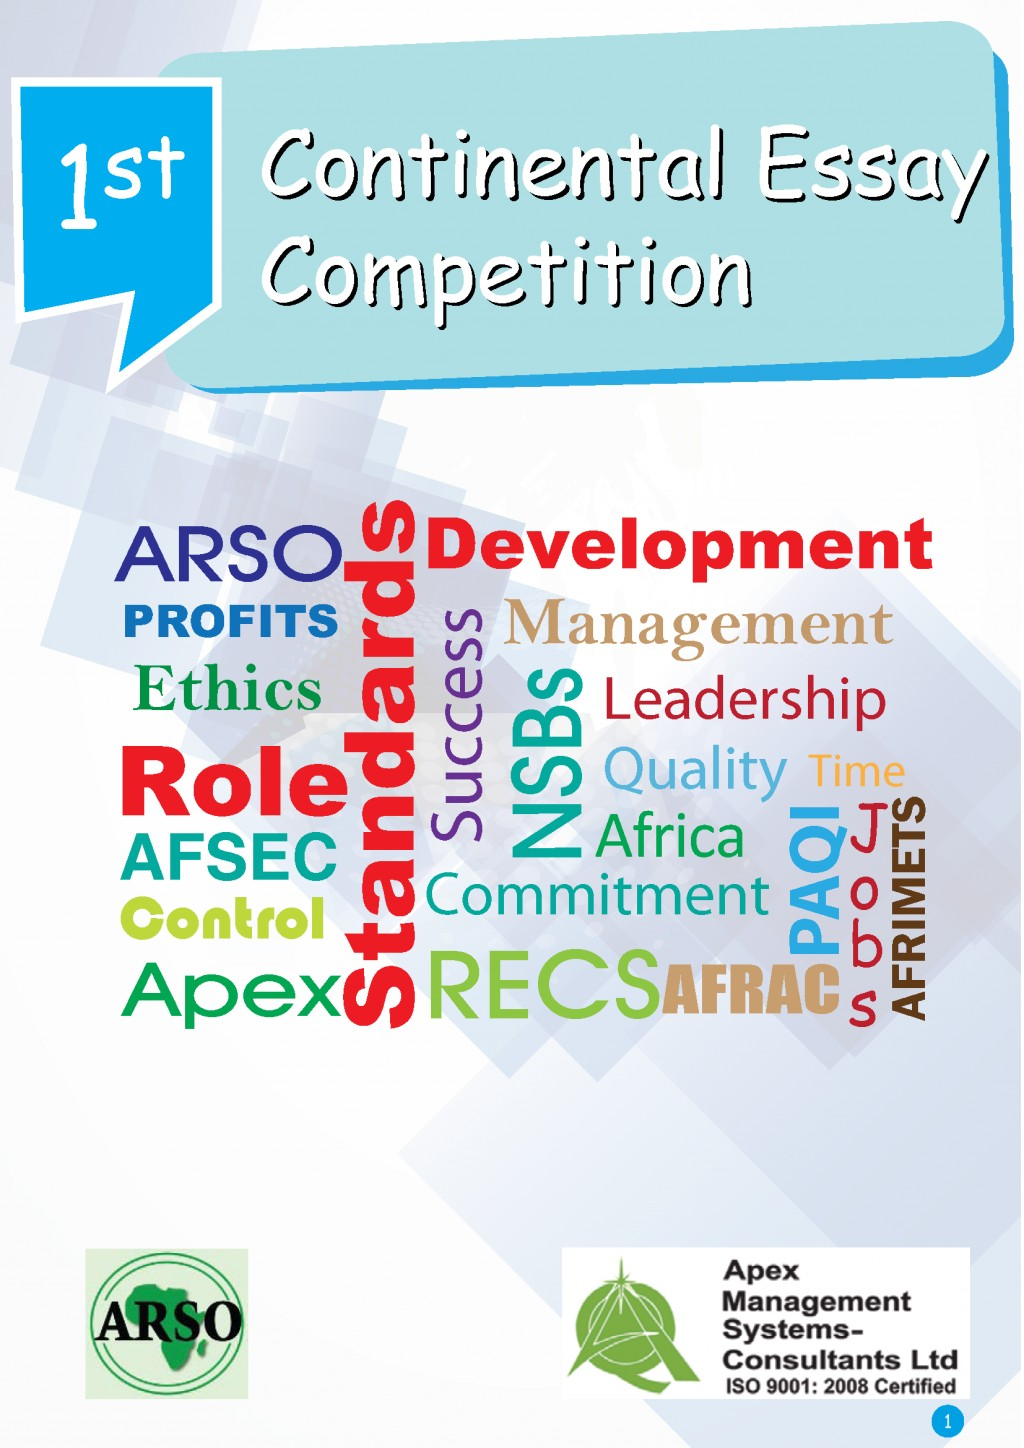 014 Arso Essay Competition Example Imposing Contests 2014 Maryknoll Contest Winners Large